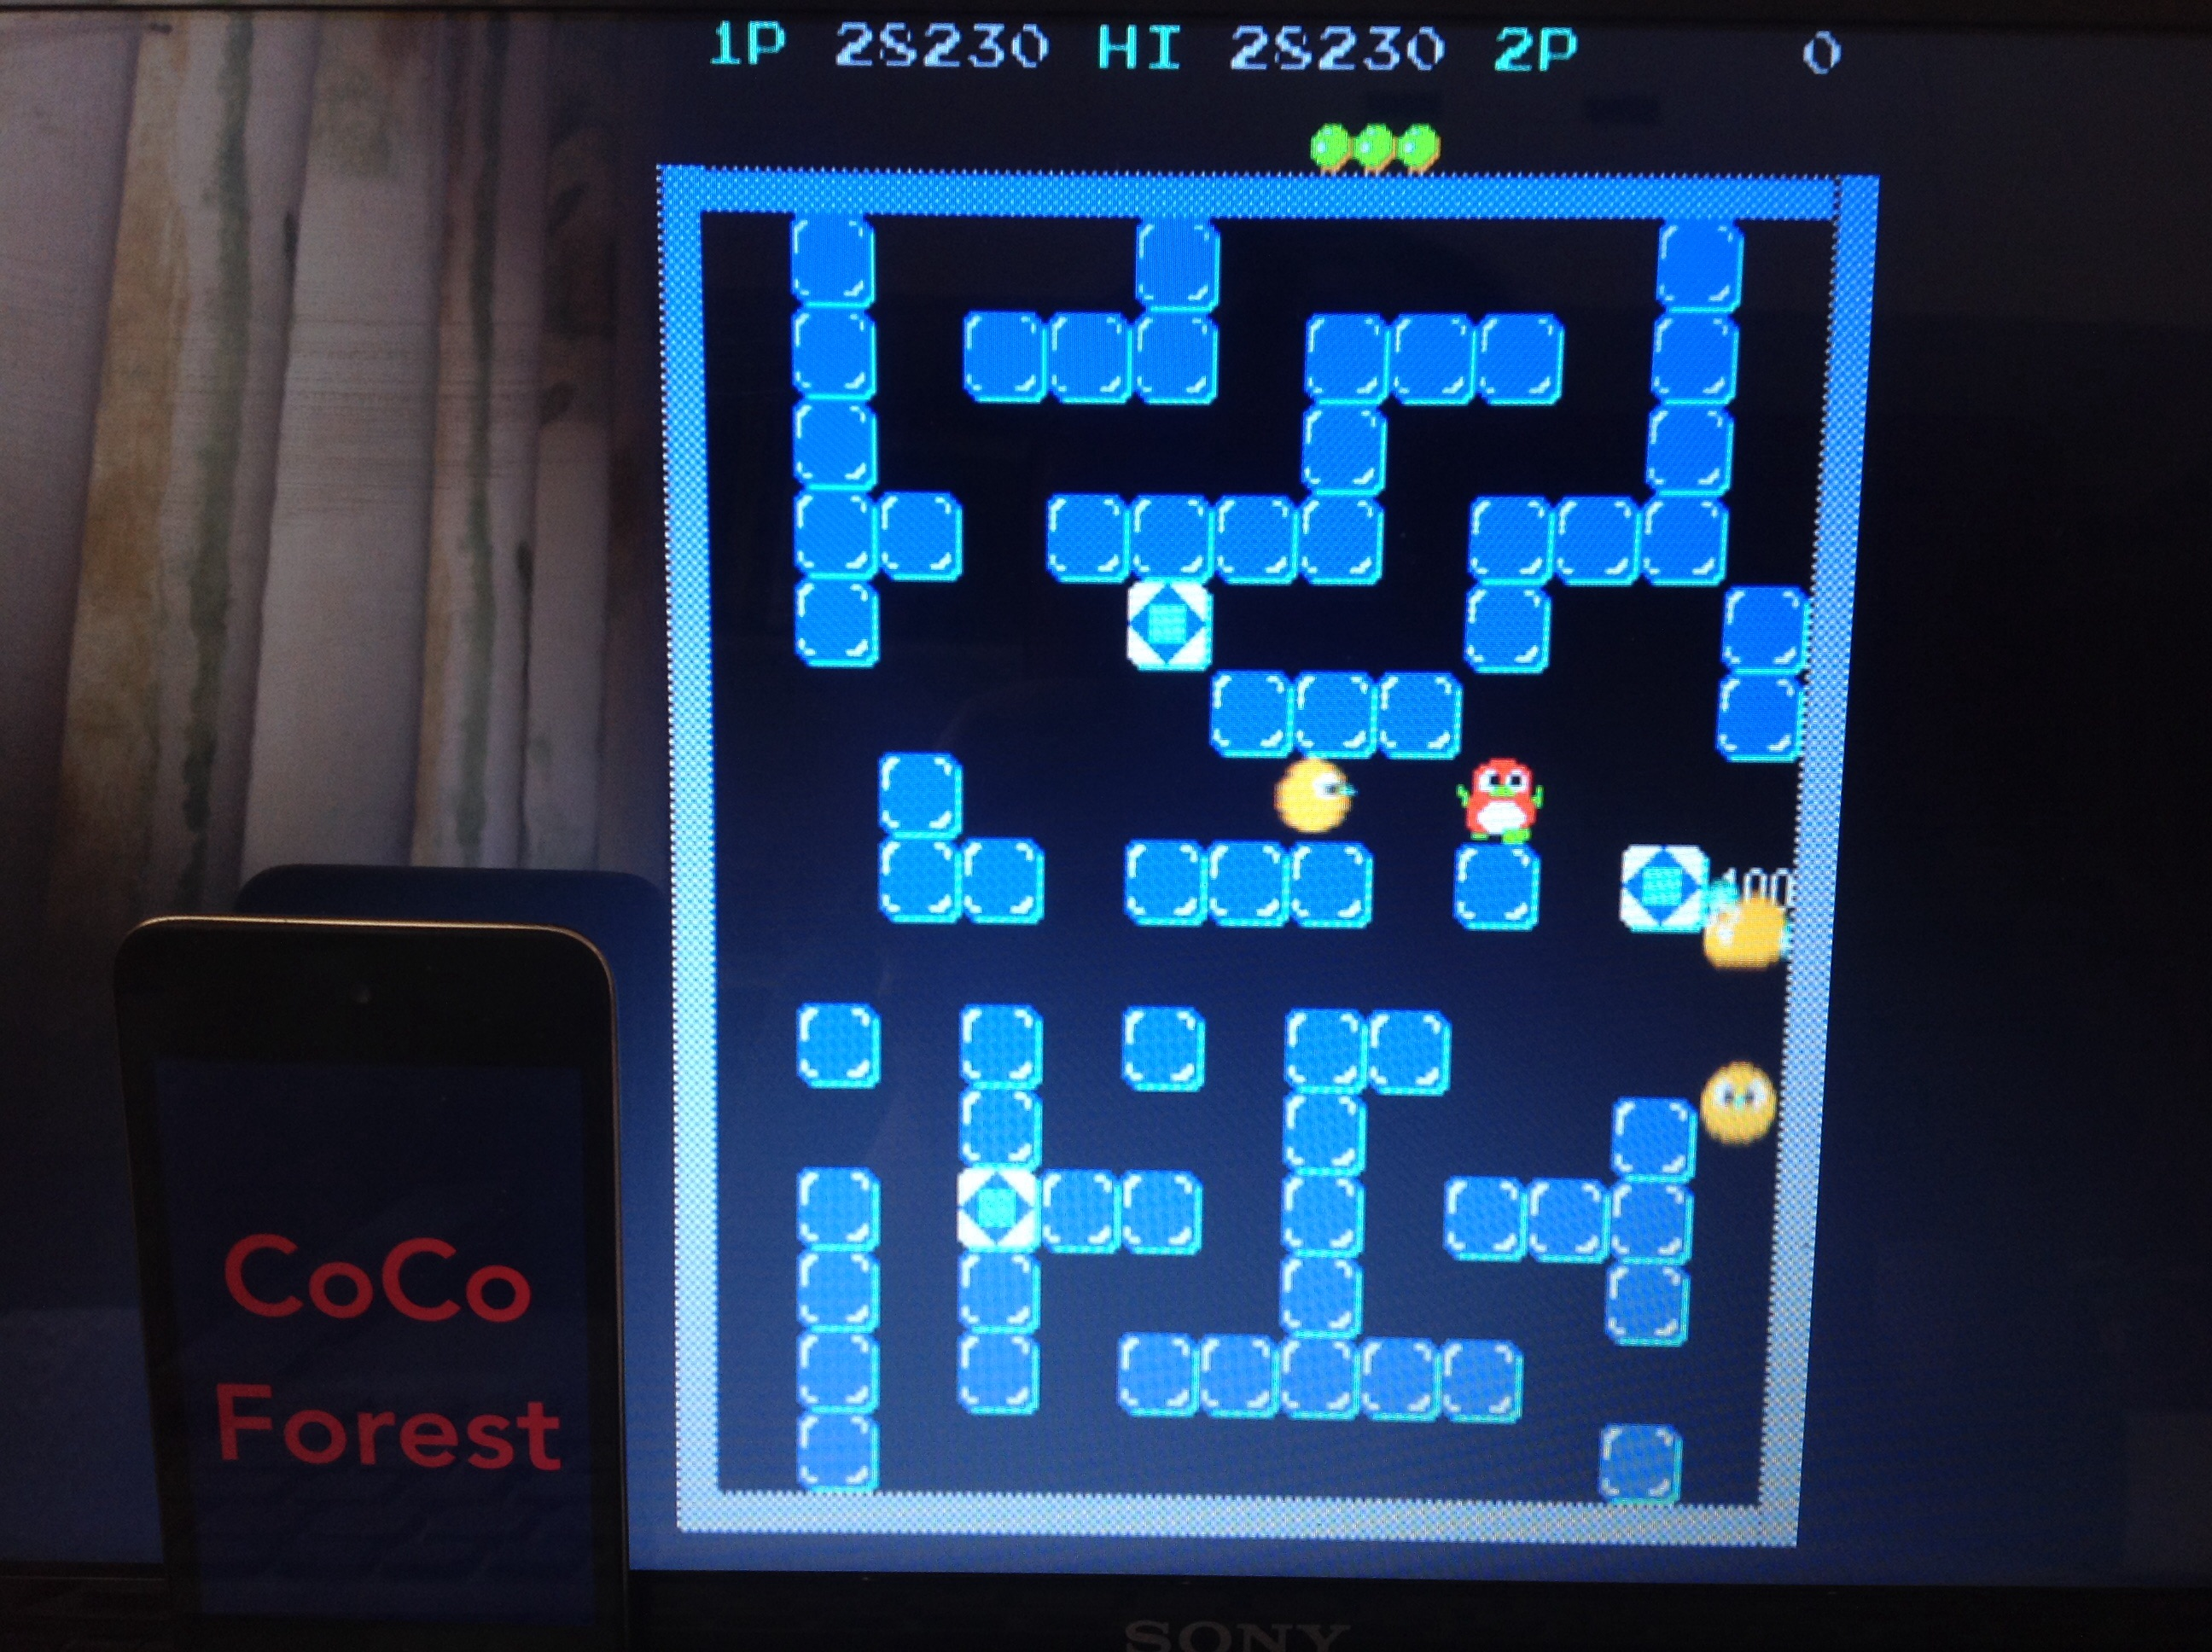 CoCoForest: Pengo (Arcade Emulated / M.A.M.E.) 28,230 points on 2015-04-21 05:48:52